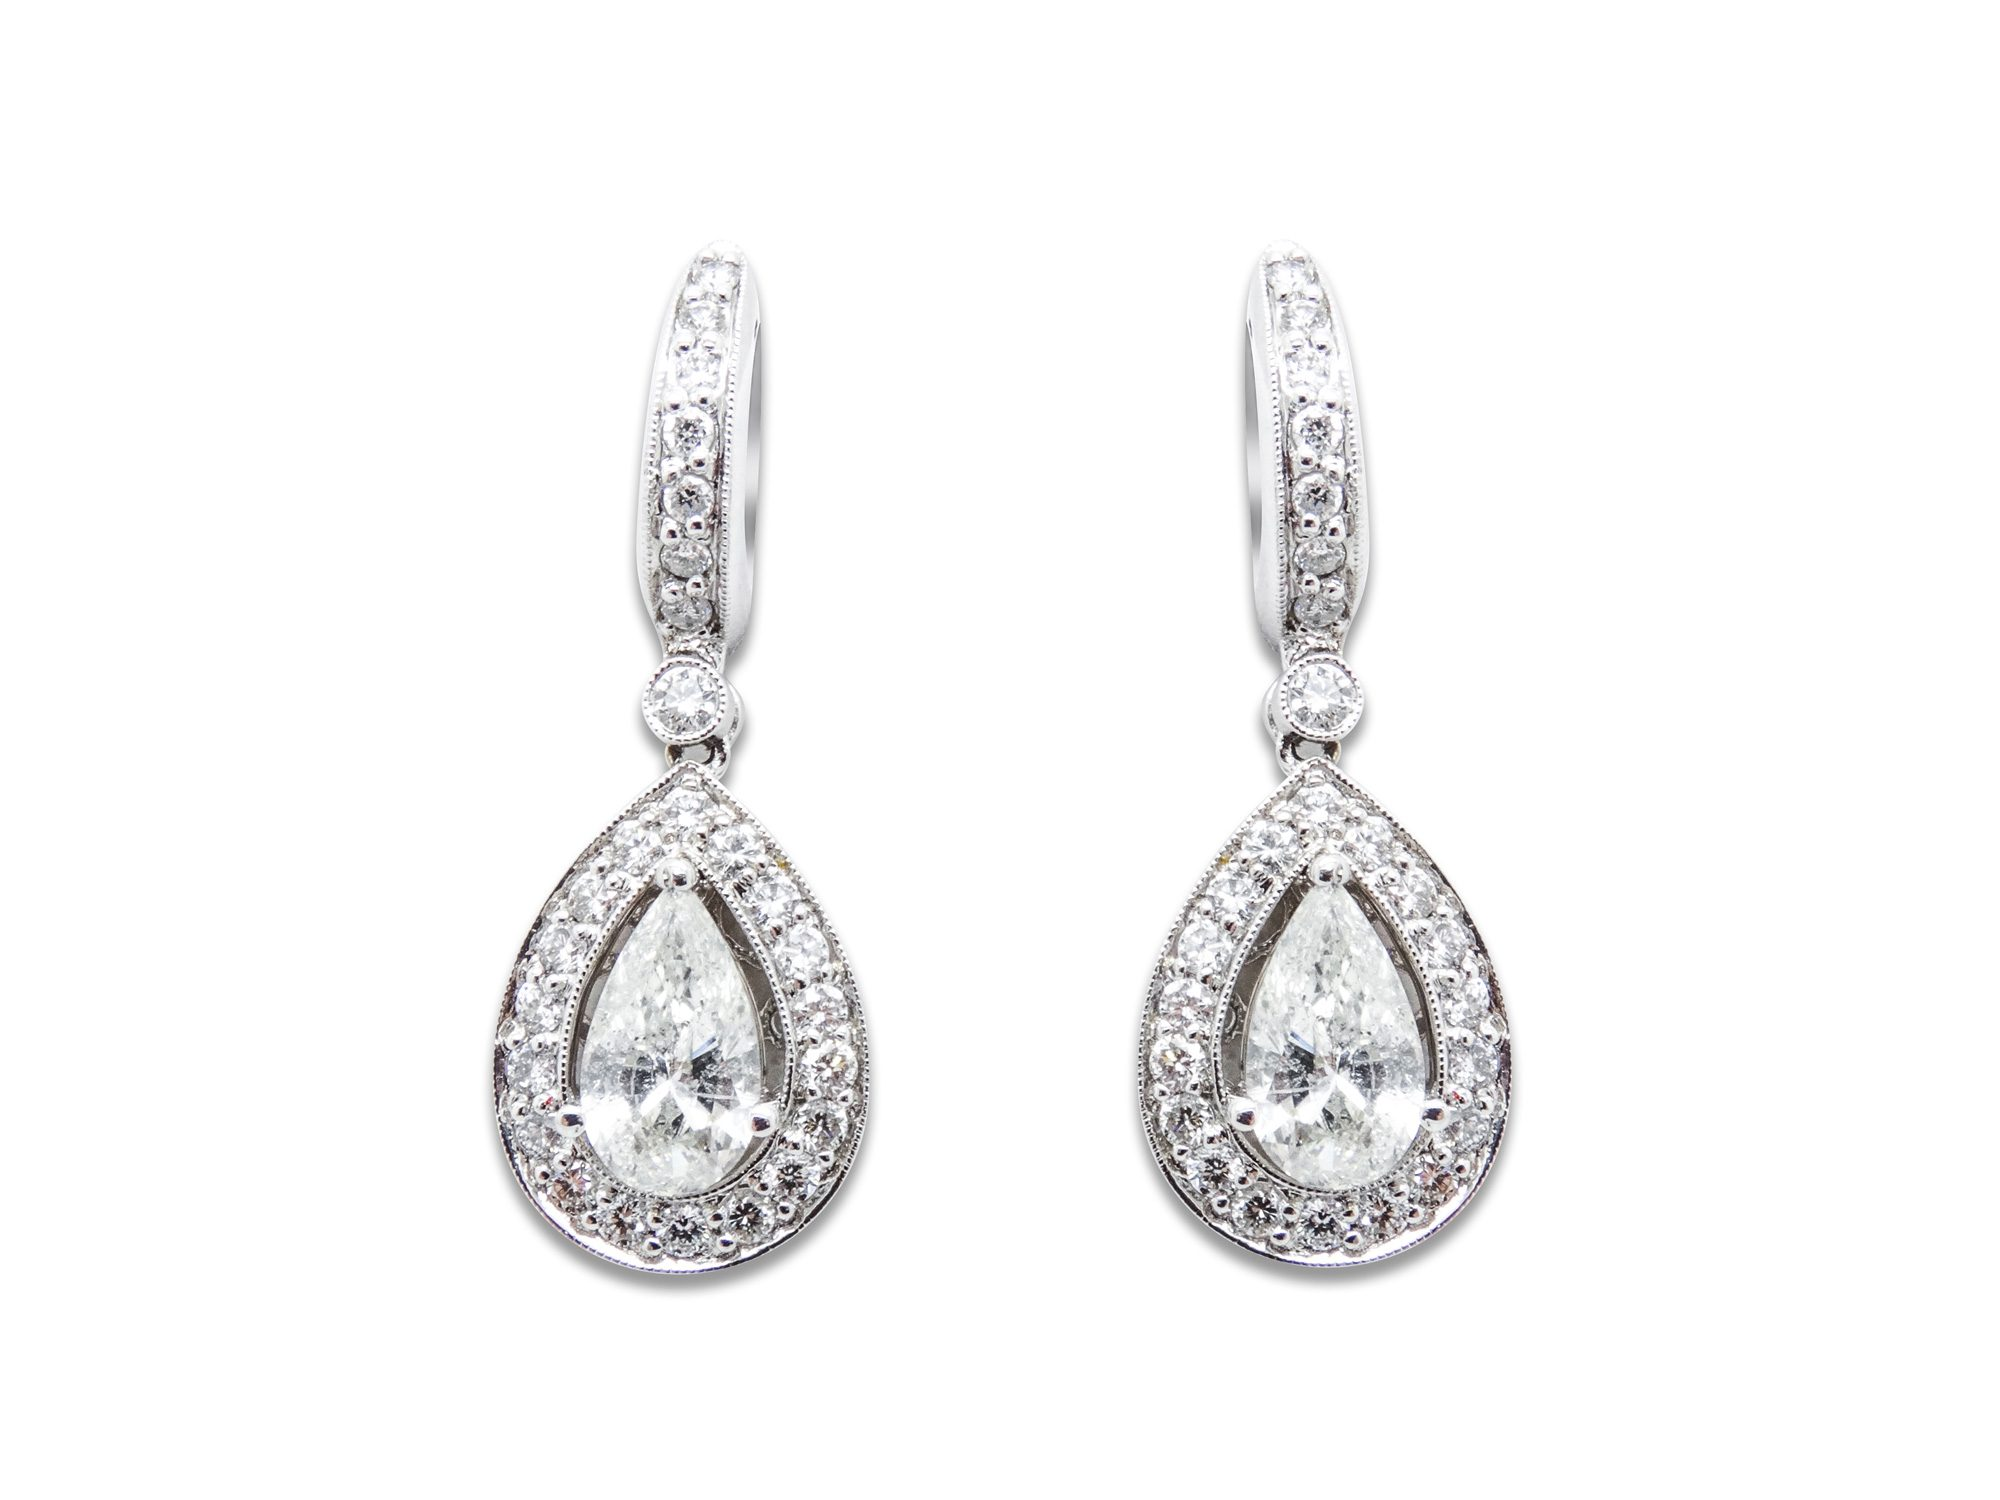 18k White Gold Earrings 1 15ct Of Diamonds Si1 Color G Center 2 Pear Shape 42ct Si3 H